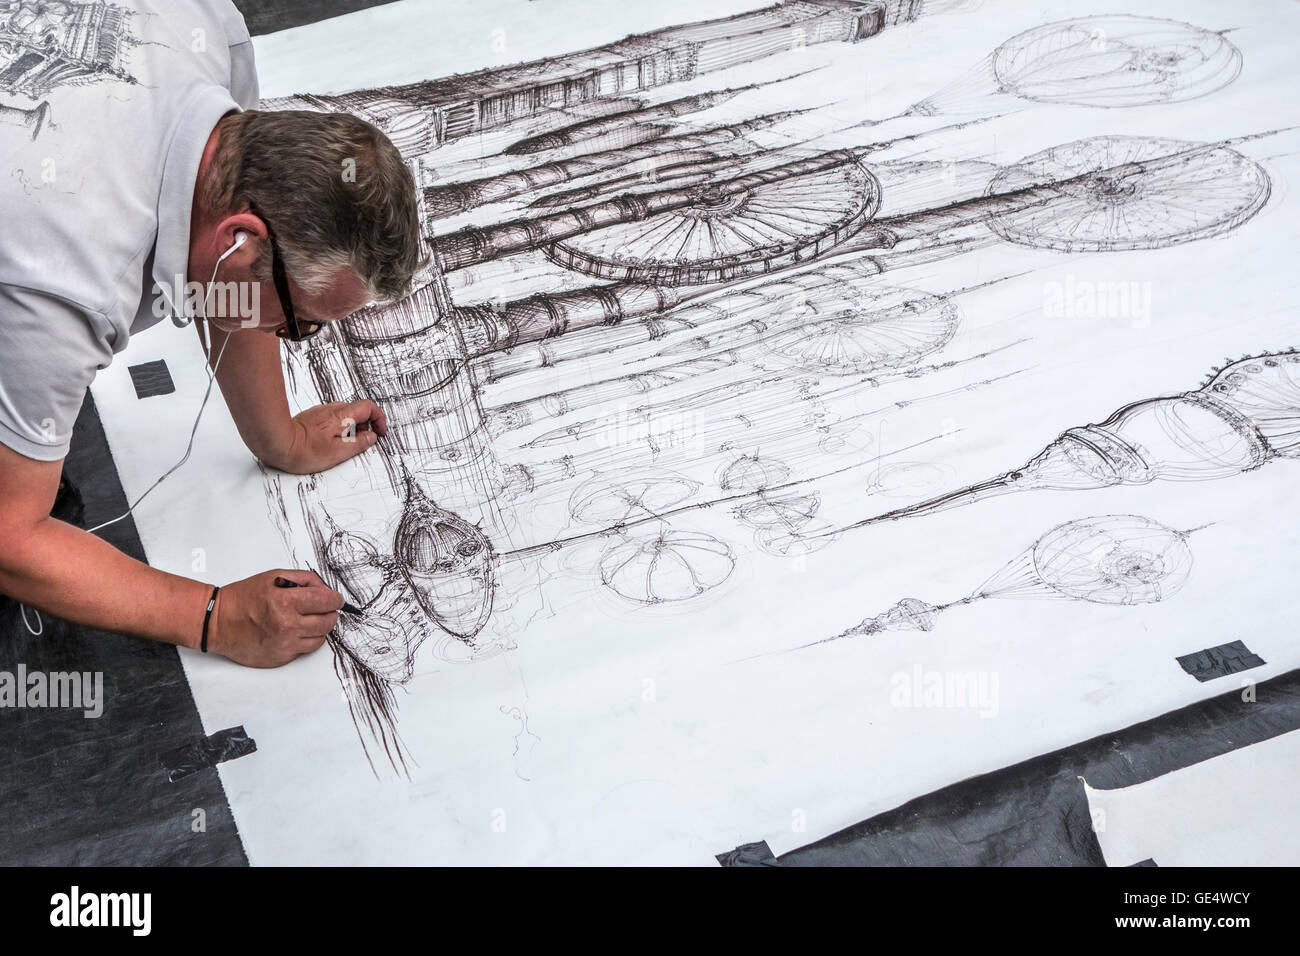 Street artist making fine detailed black and white drawing of imaginary machines on paper lying on the ground - Stock Image